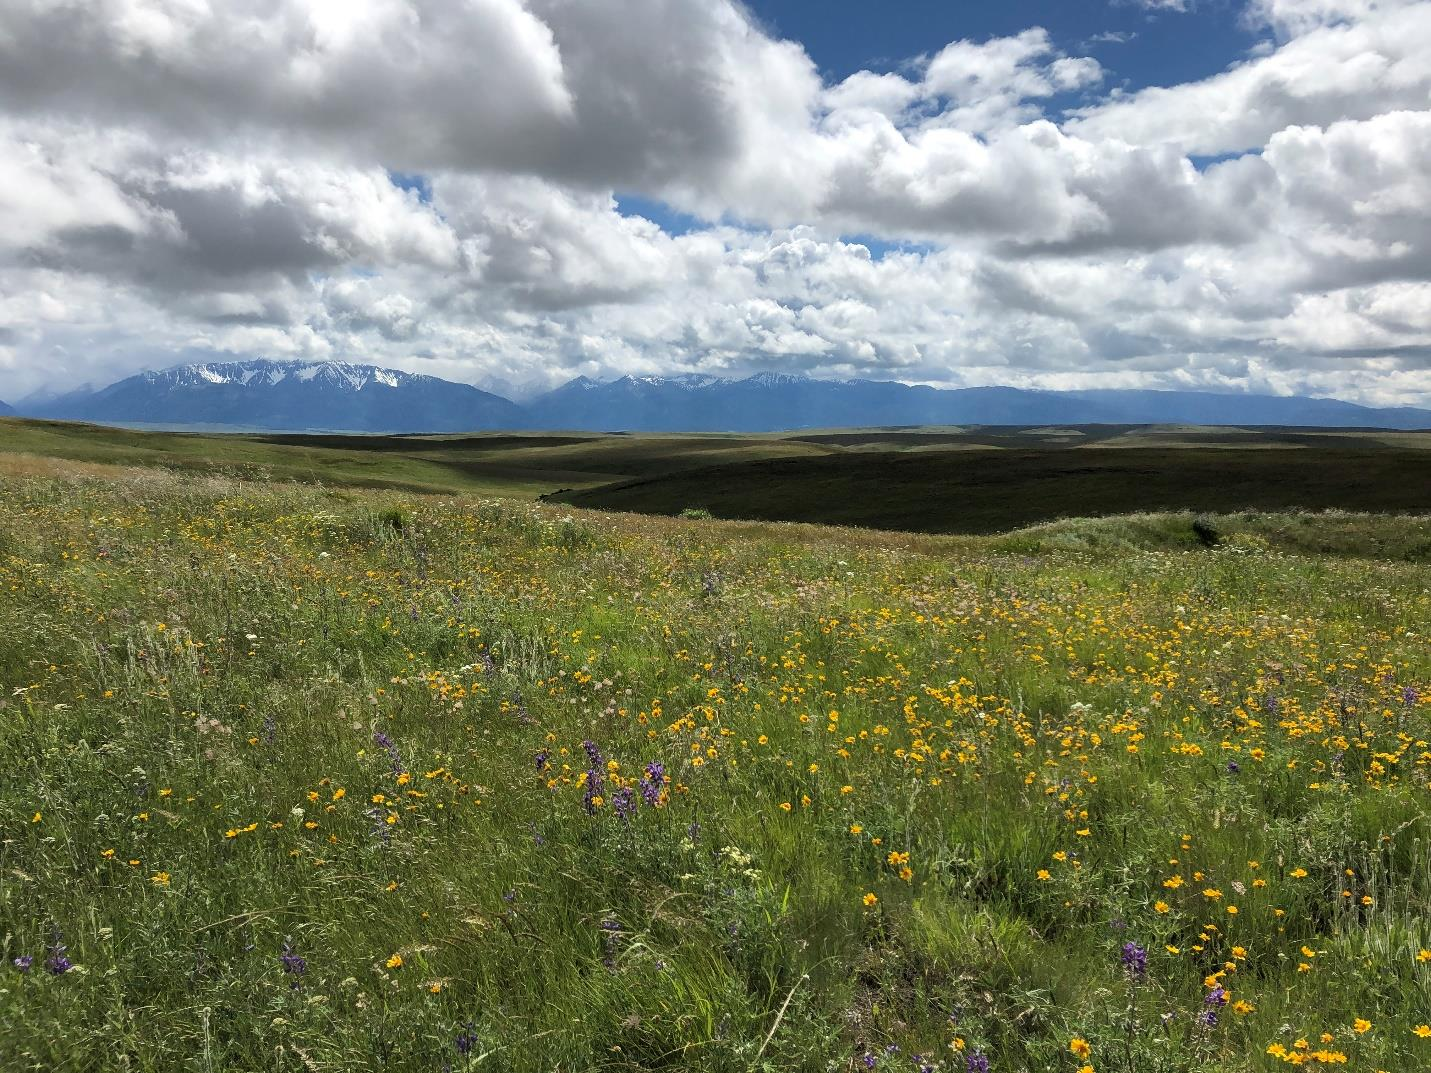 A riot of flowers carpet the Zumwalt Prairie with the Wallowa Mountains as a dramatic backdrop.